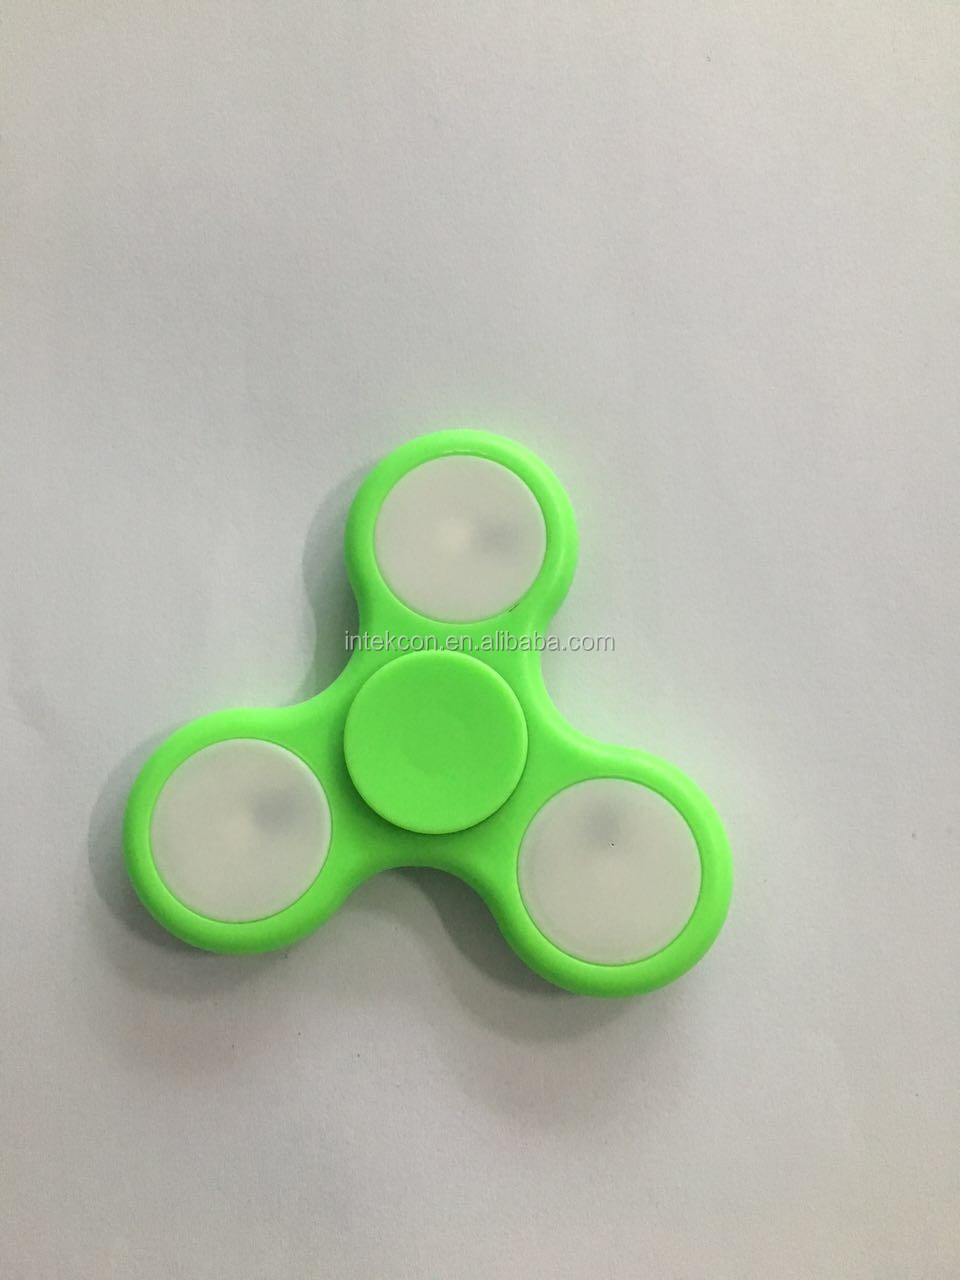 INTEKCON Factory price LED flashing hand spinner fidget spinner 608 bearing LED flashing light fidget spinner